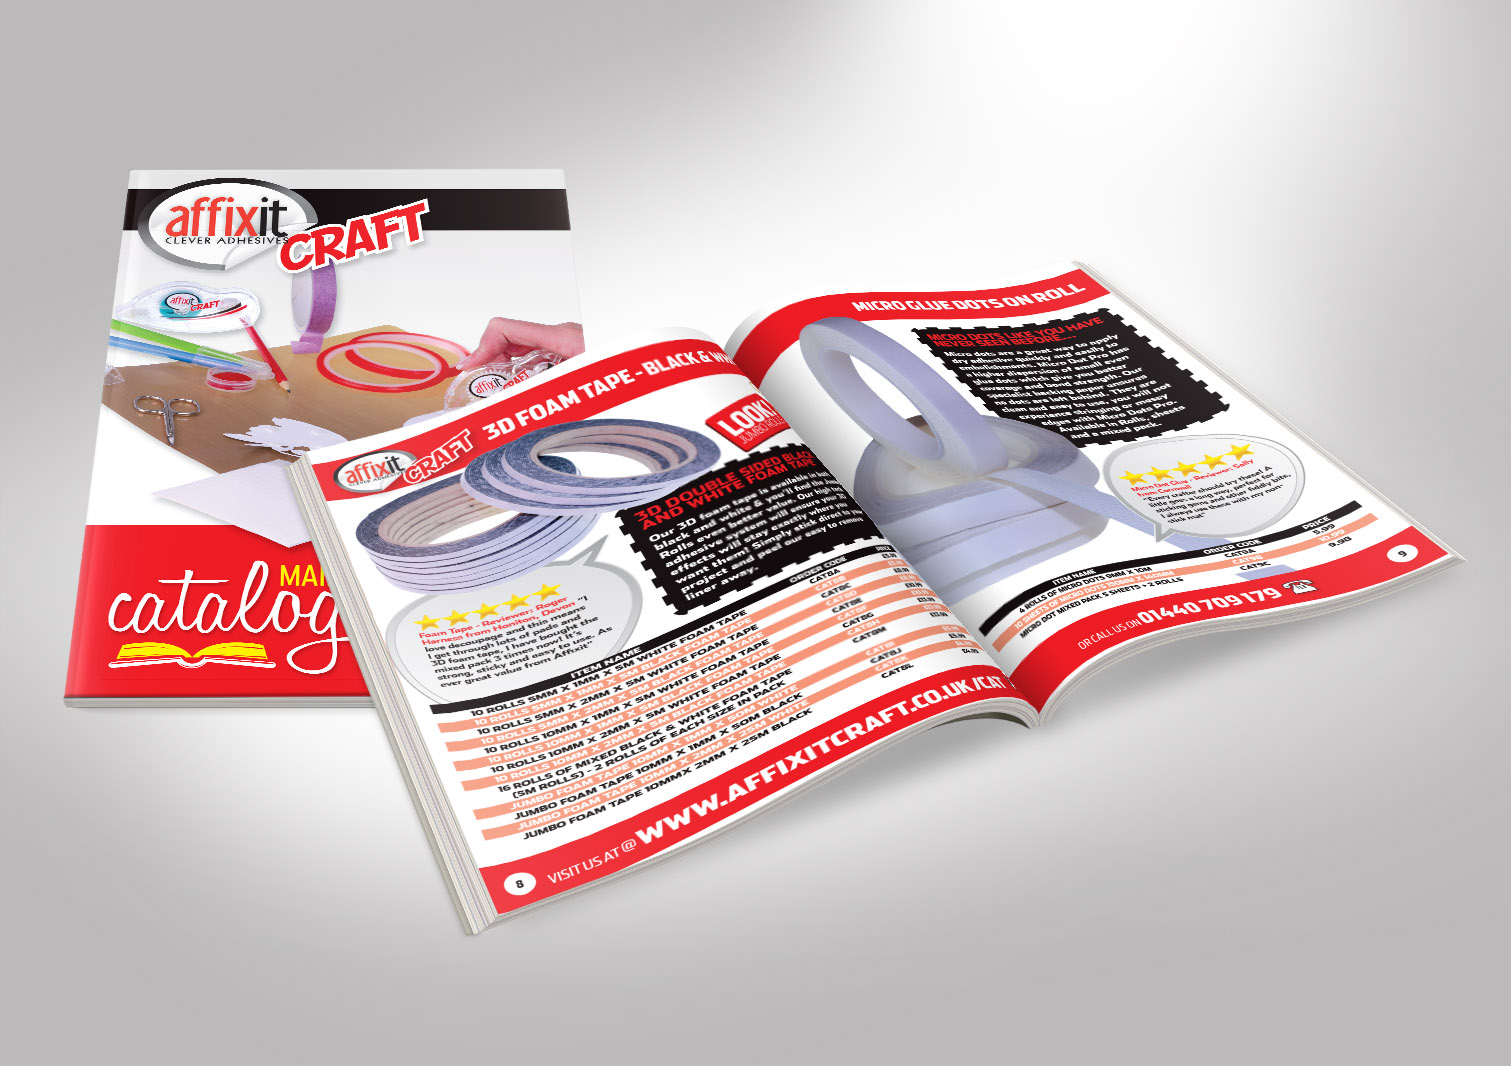 Affixit Craft Order Catalogue Front and Inside